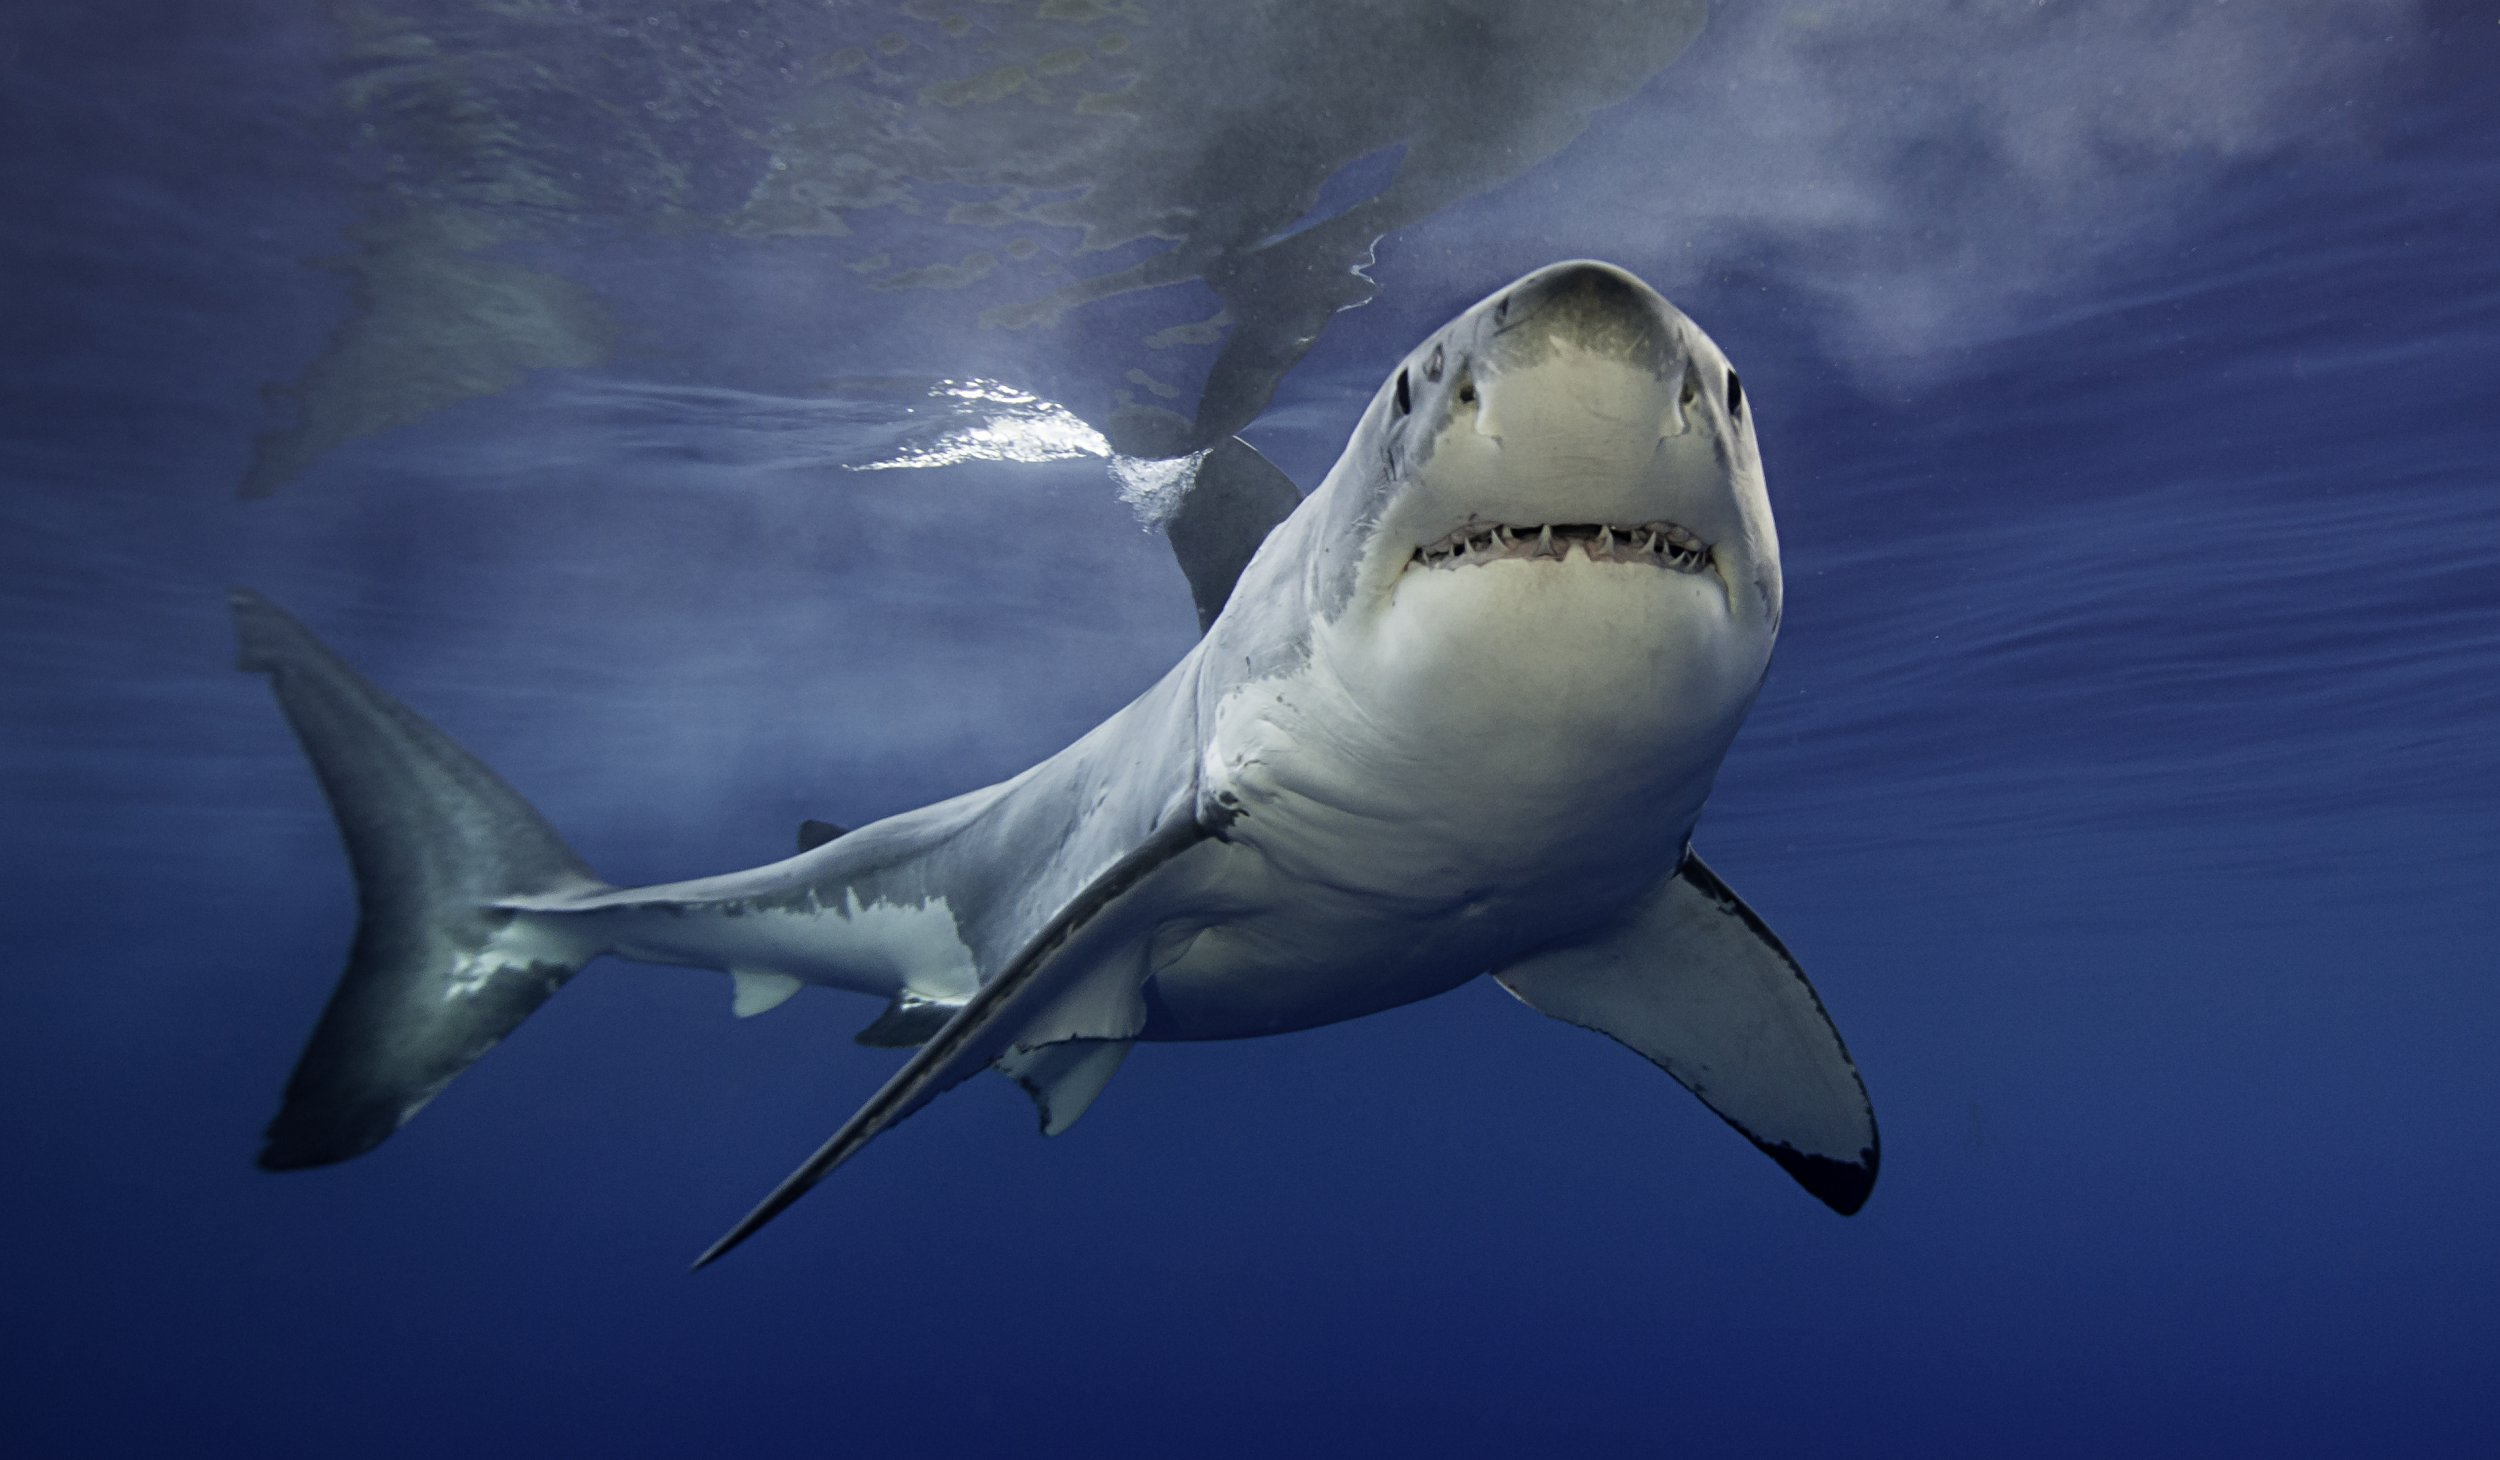 Smell of dead sharks to be used to protect surfers from attacks